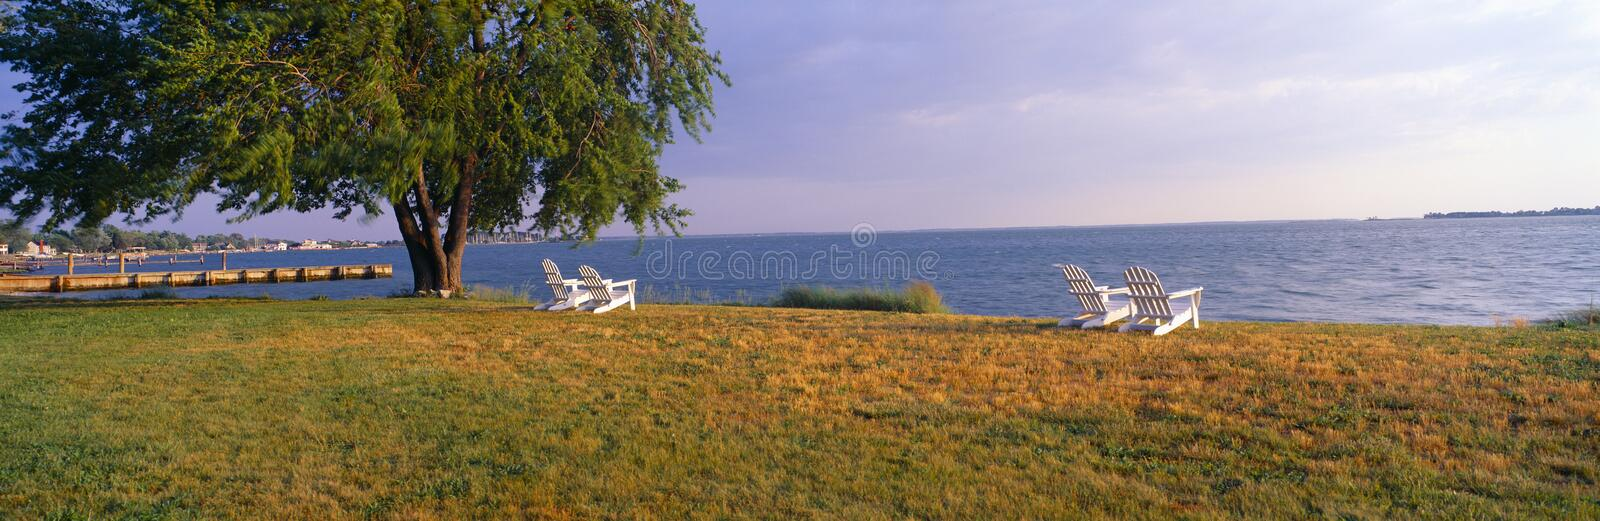 Download Beach chairs stock image. Image of chesapeake, adirondacks - 23176437